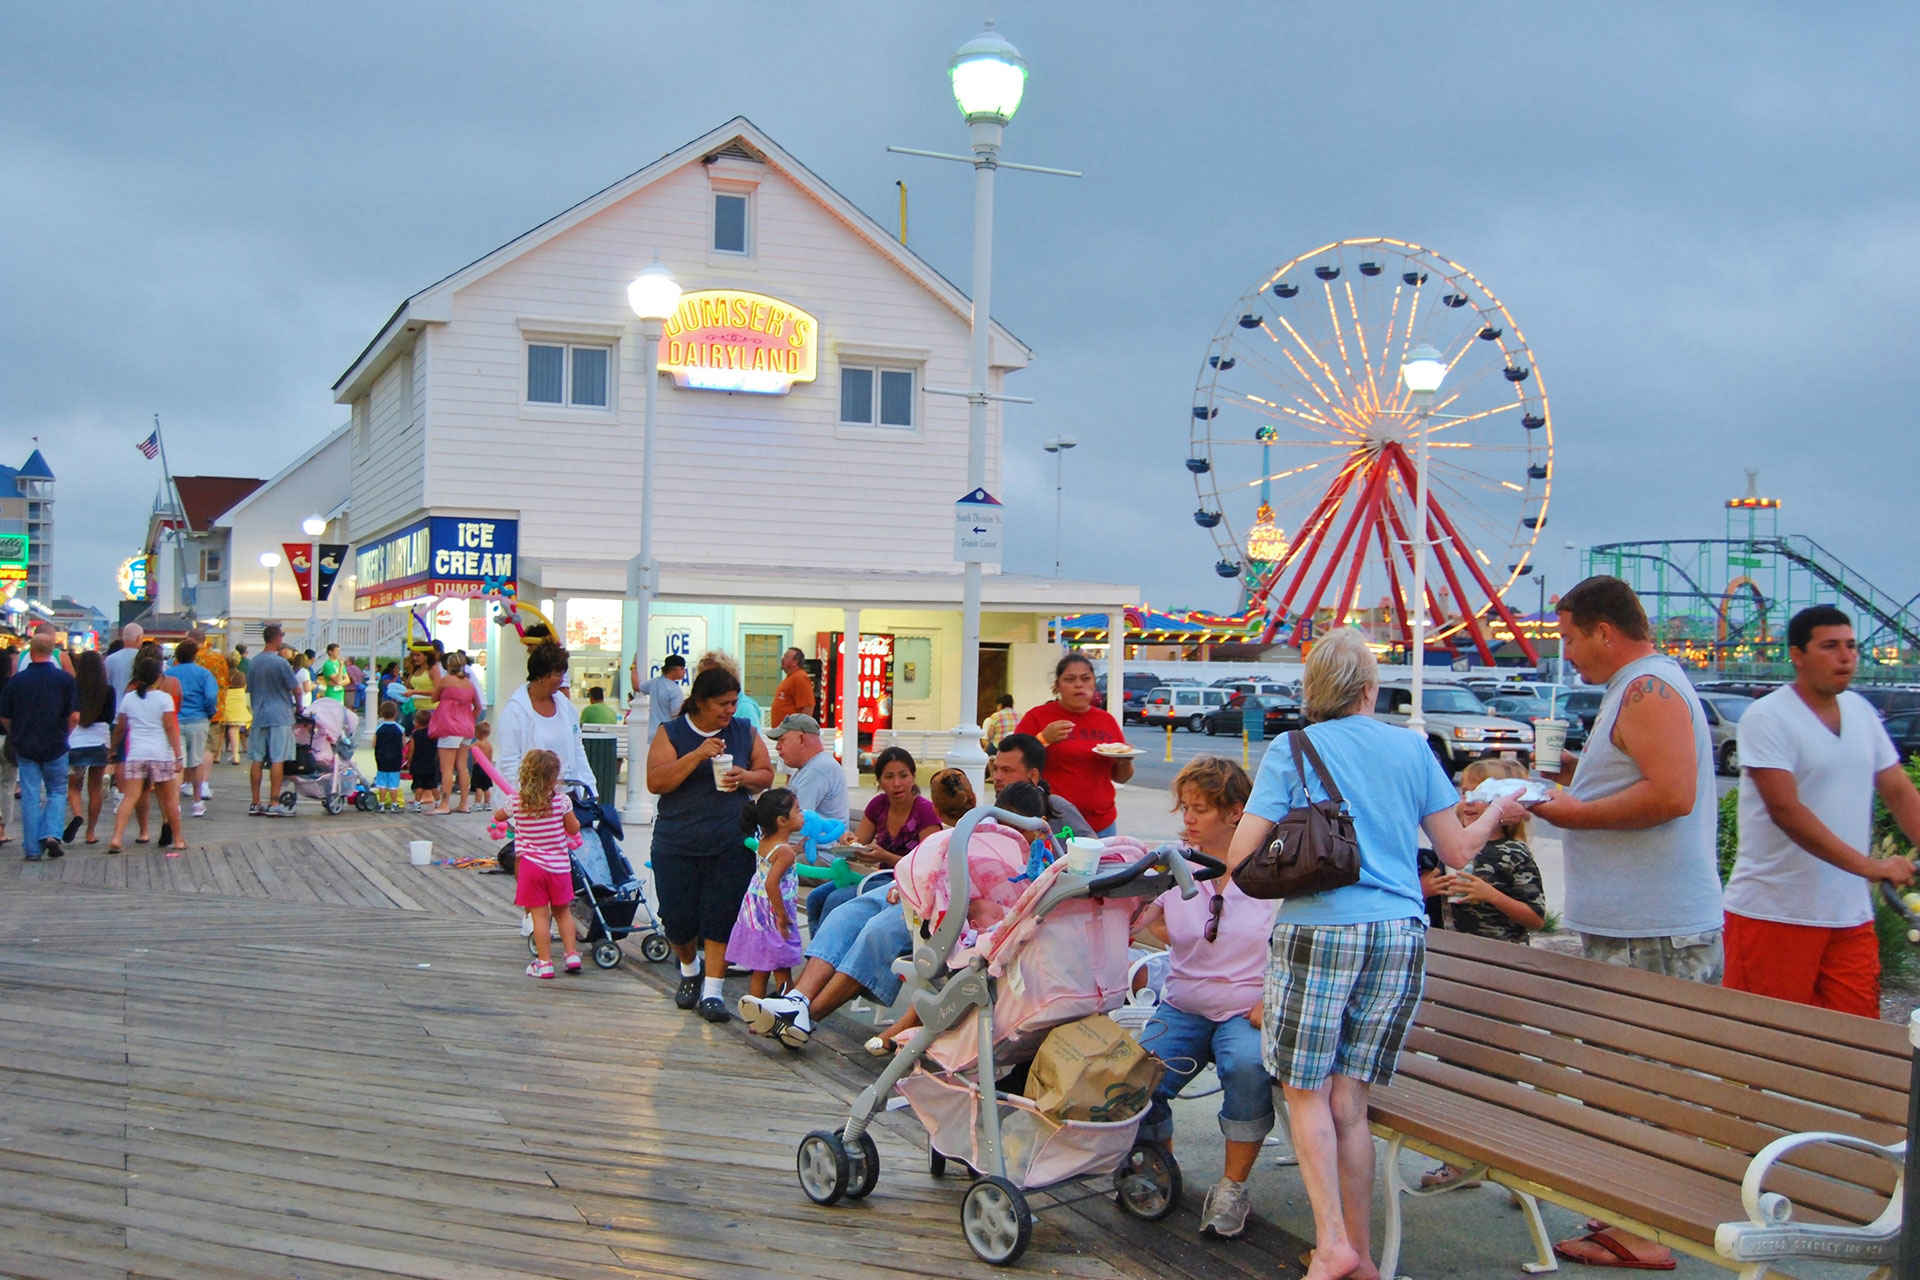 Ocean City, Maryland Boardwalk; Courtesy of Lissandra Melo/Shutterstock.com